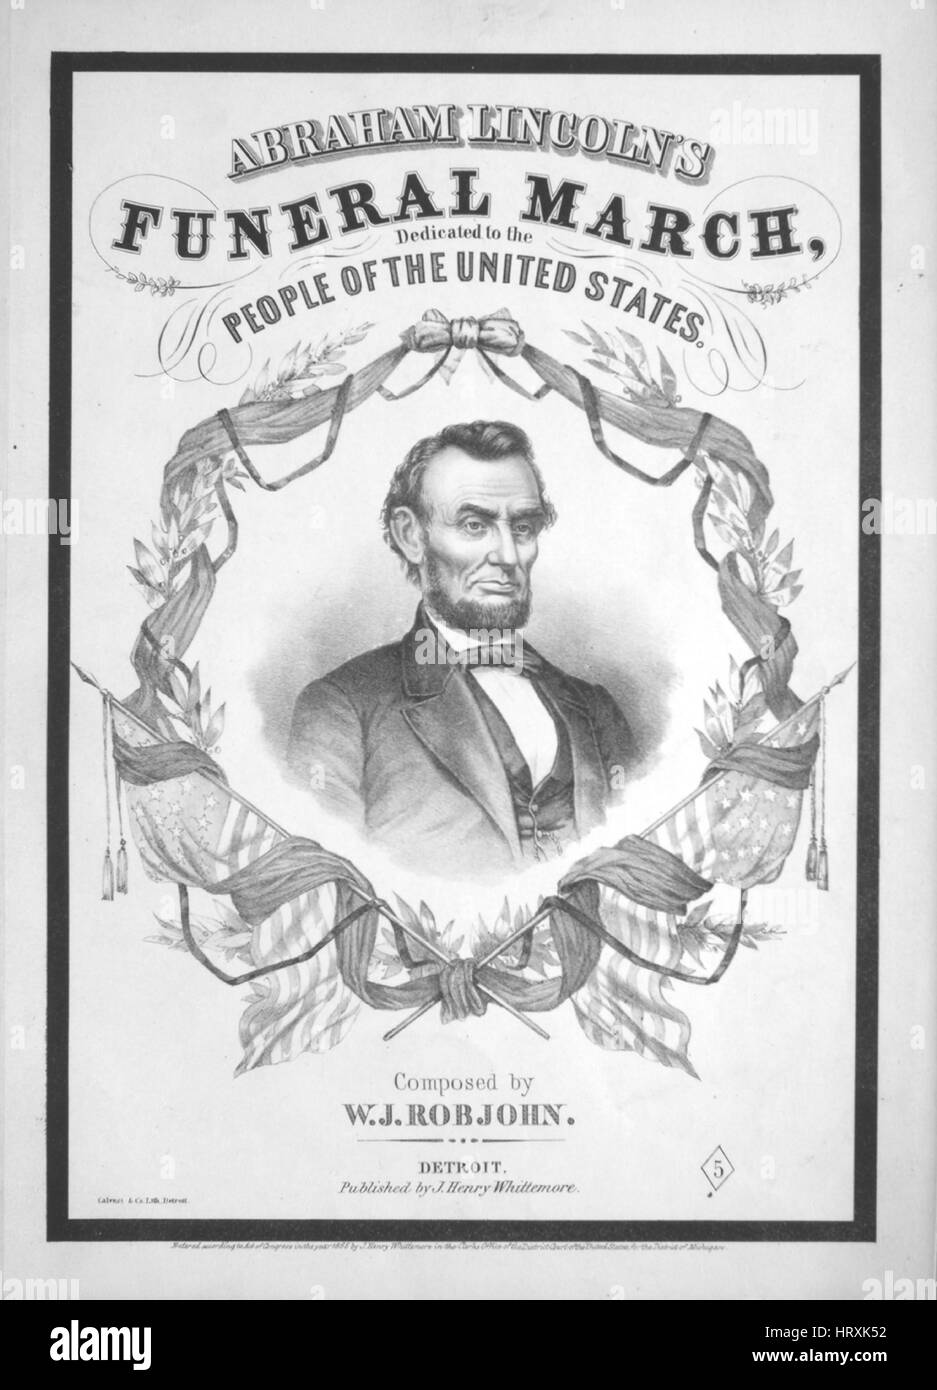 Sheet music cover image of the song 'Abraham Lincoln's Funeral March', with original authorship notes - Stock Image